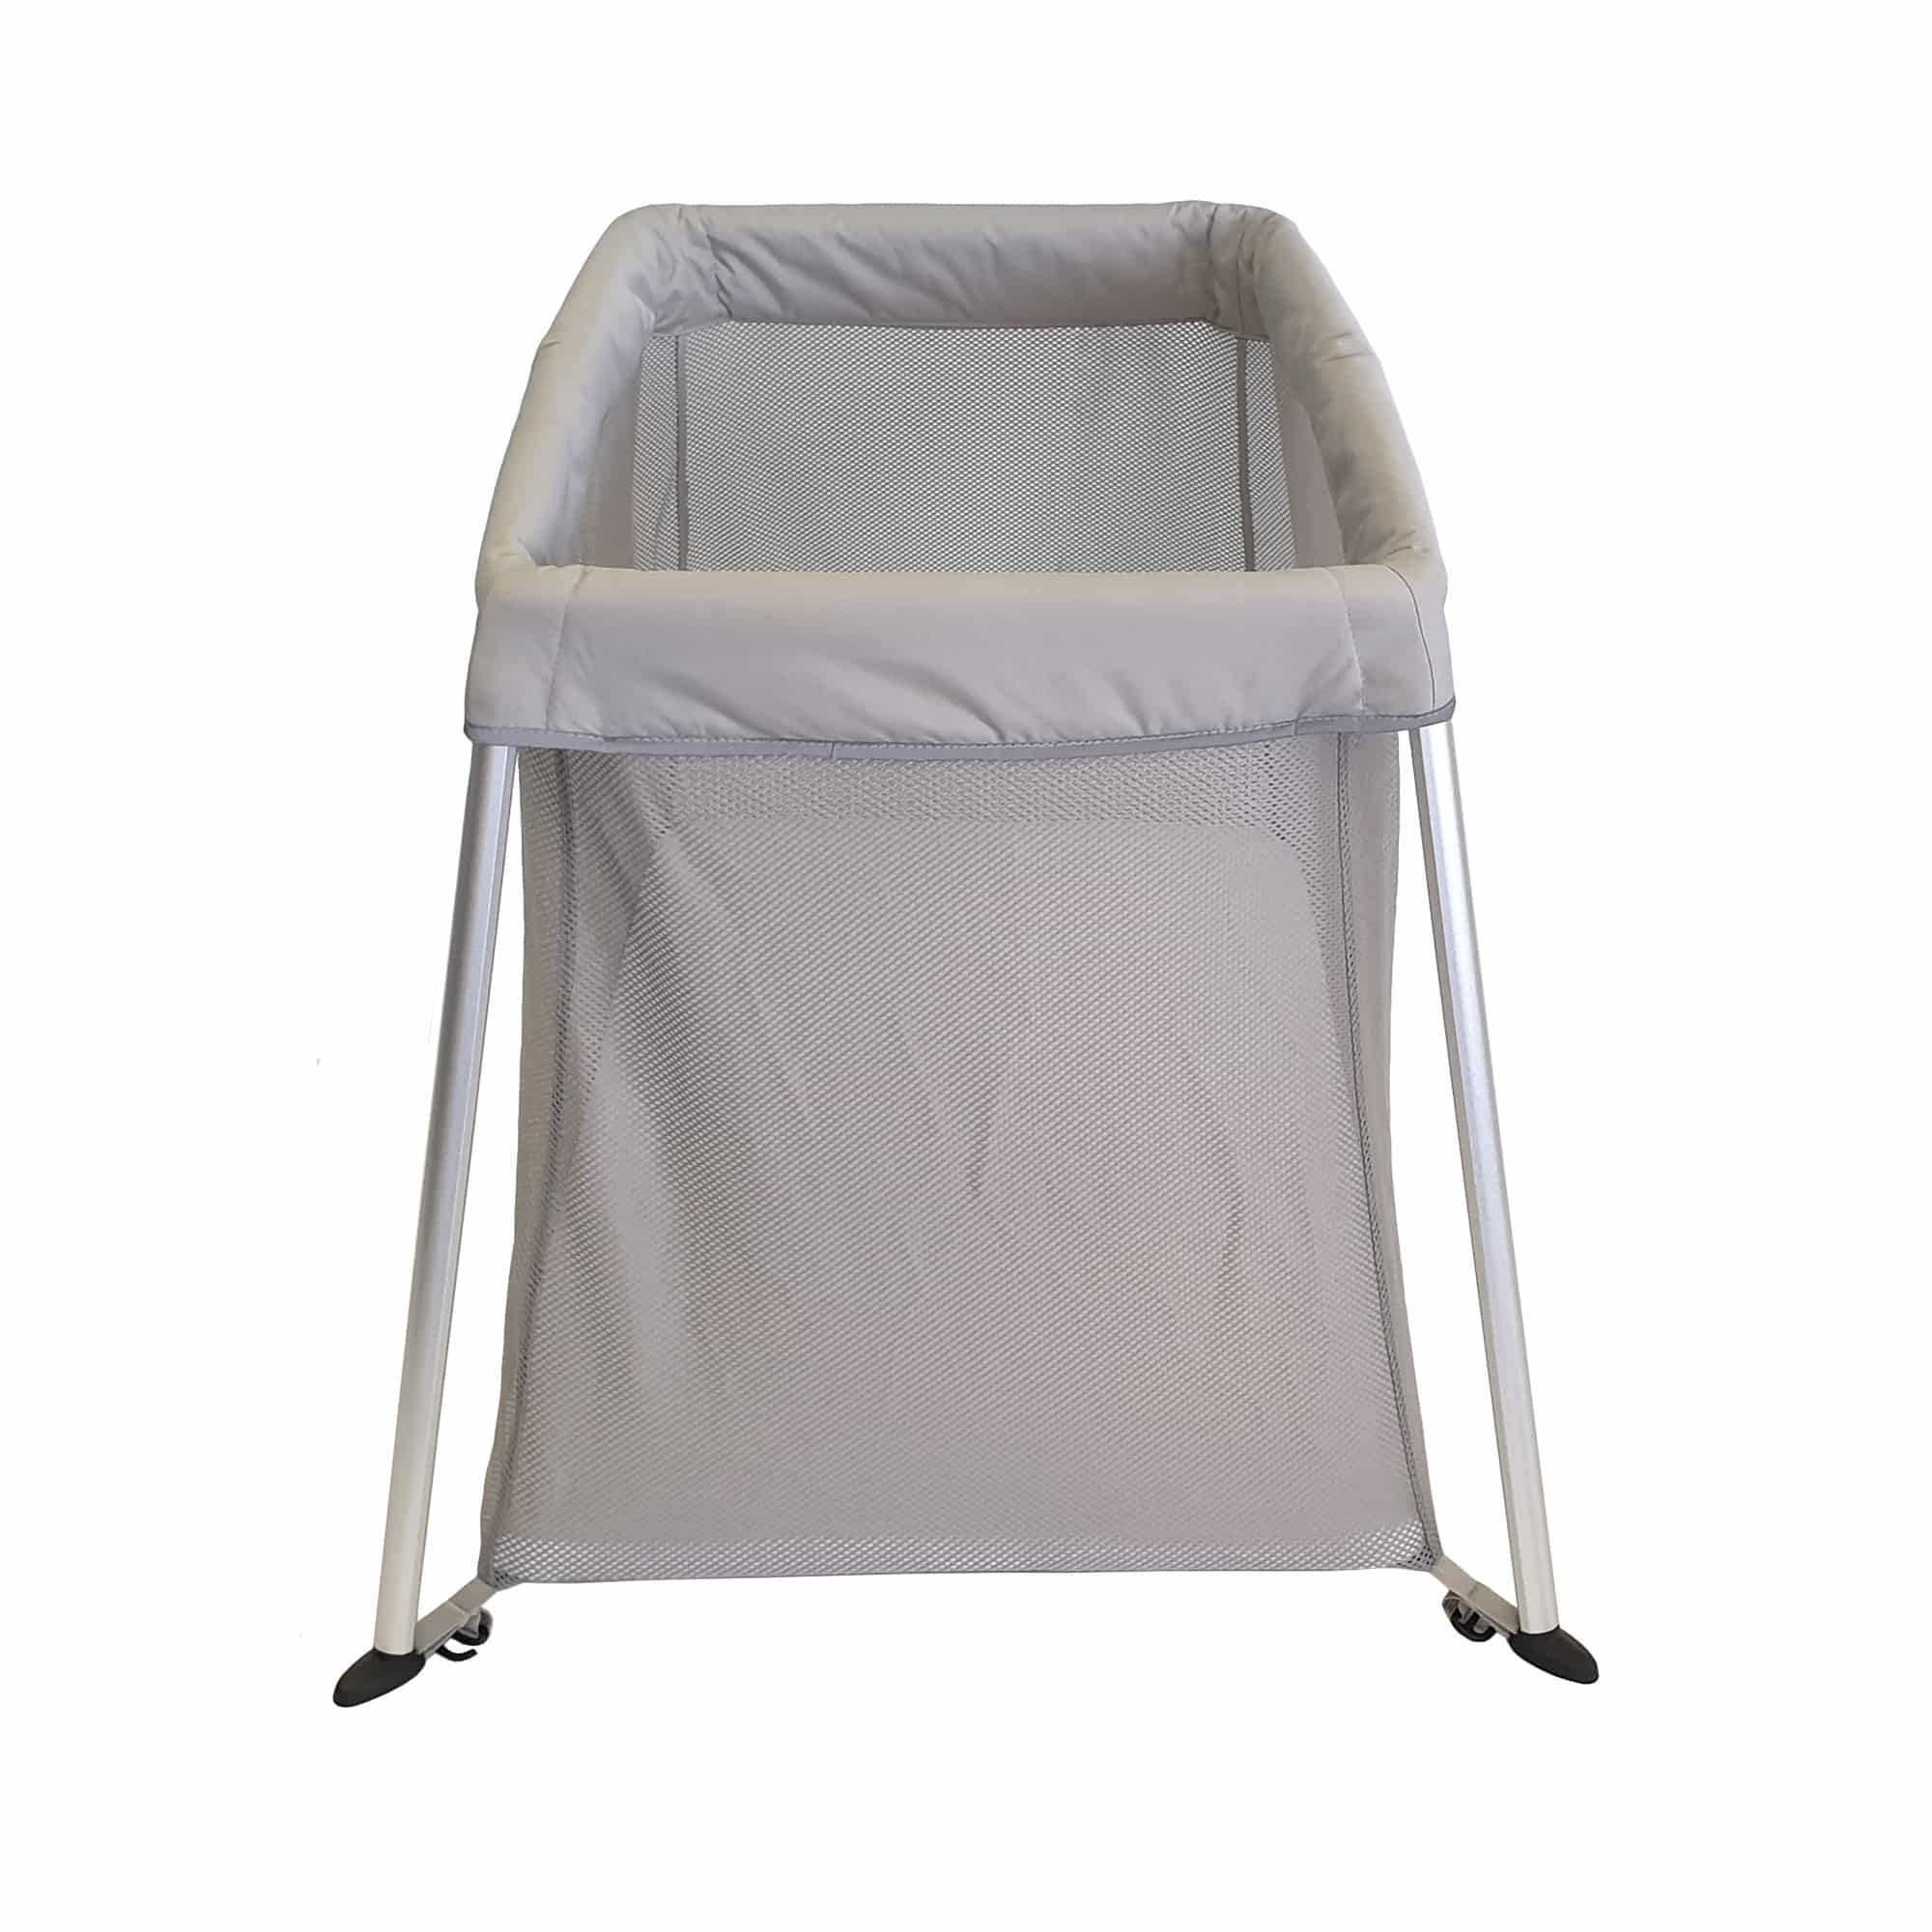 A stylish and sturdy travel cot perfect for babies and toddlers